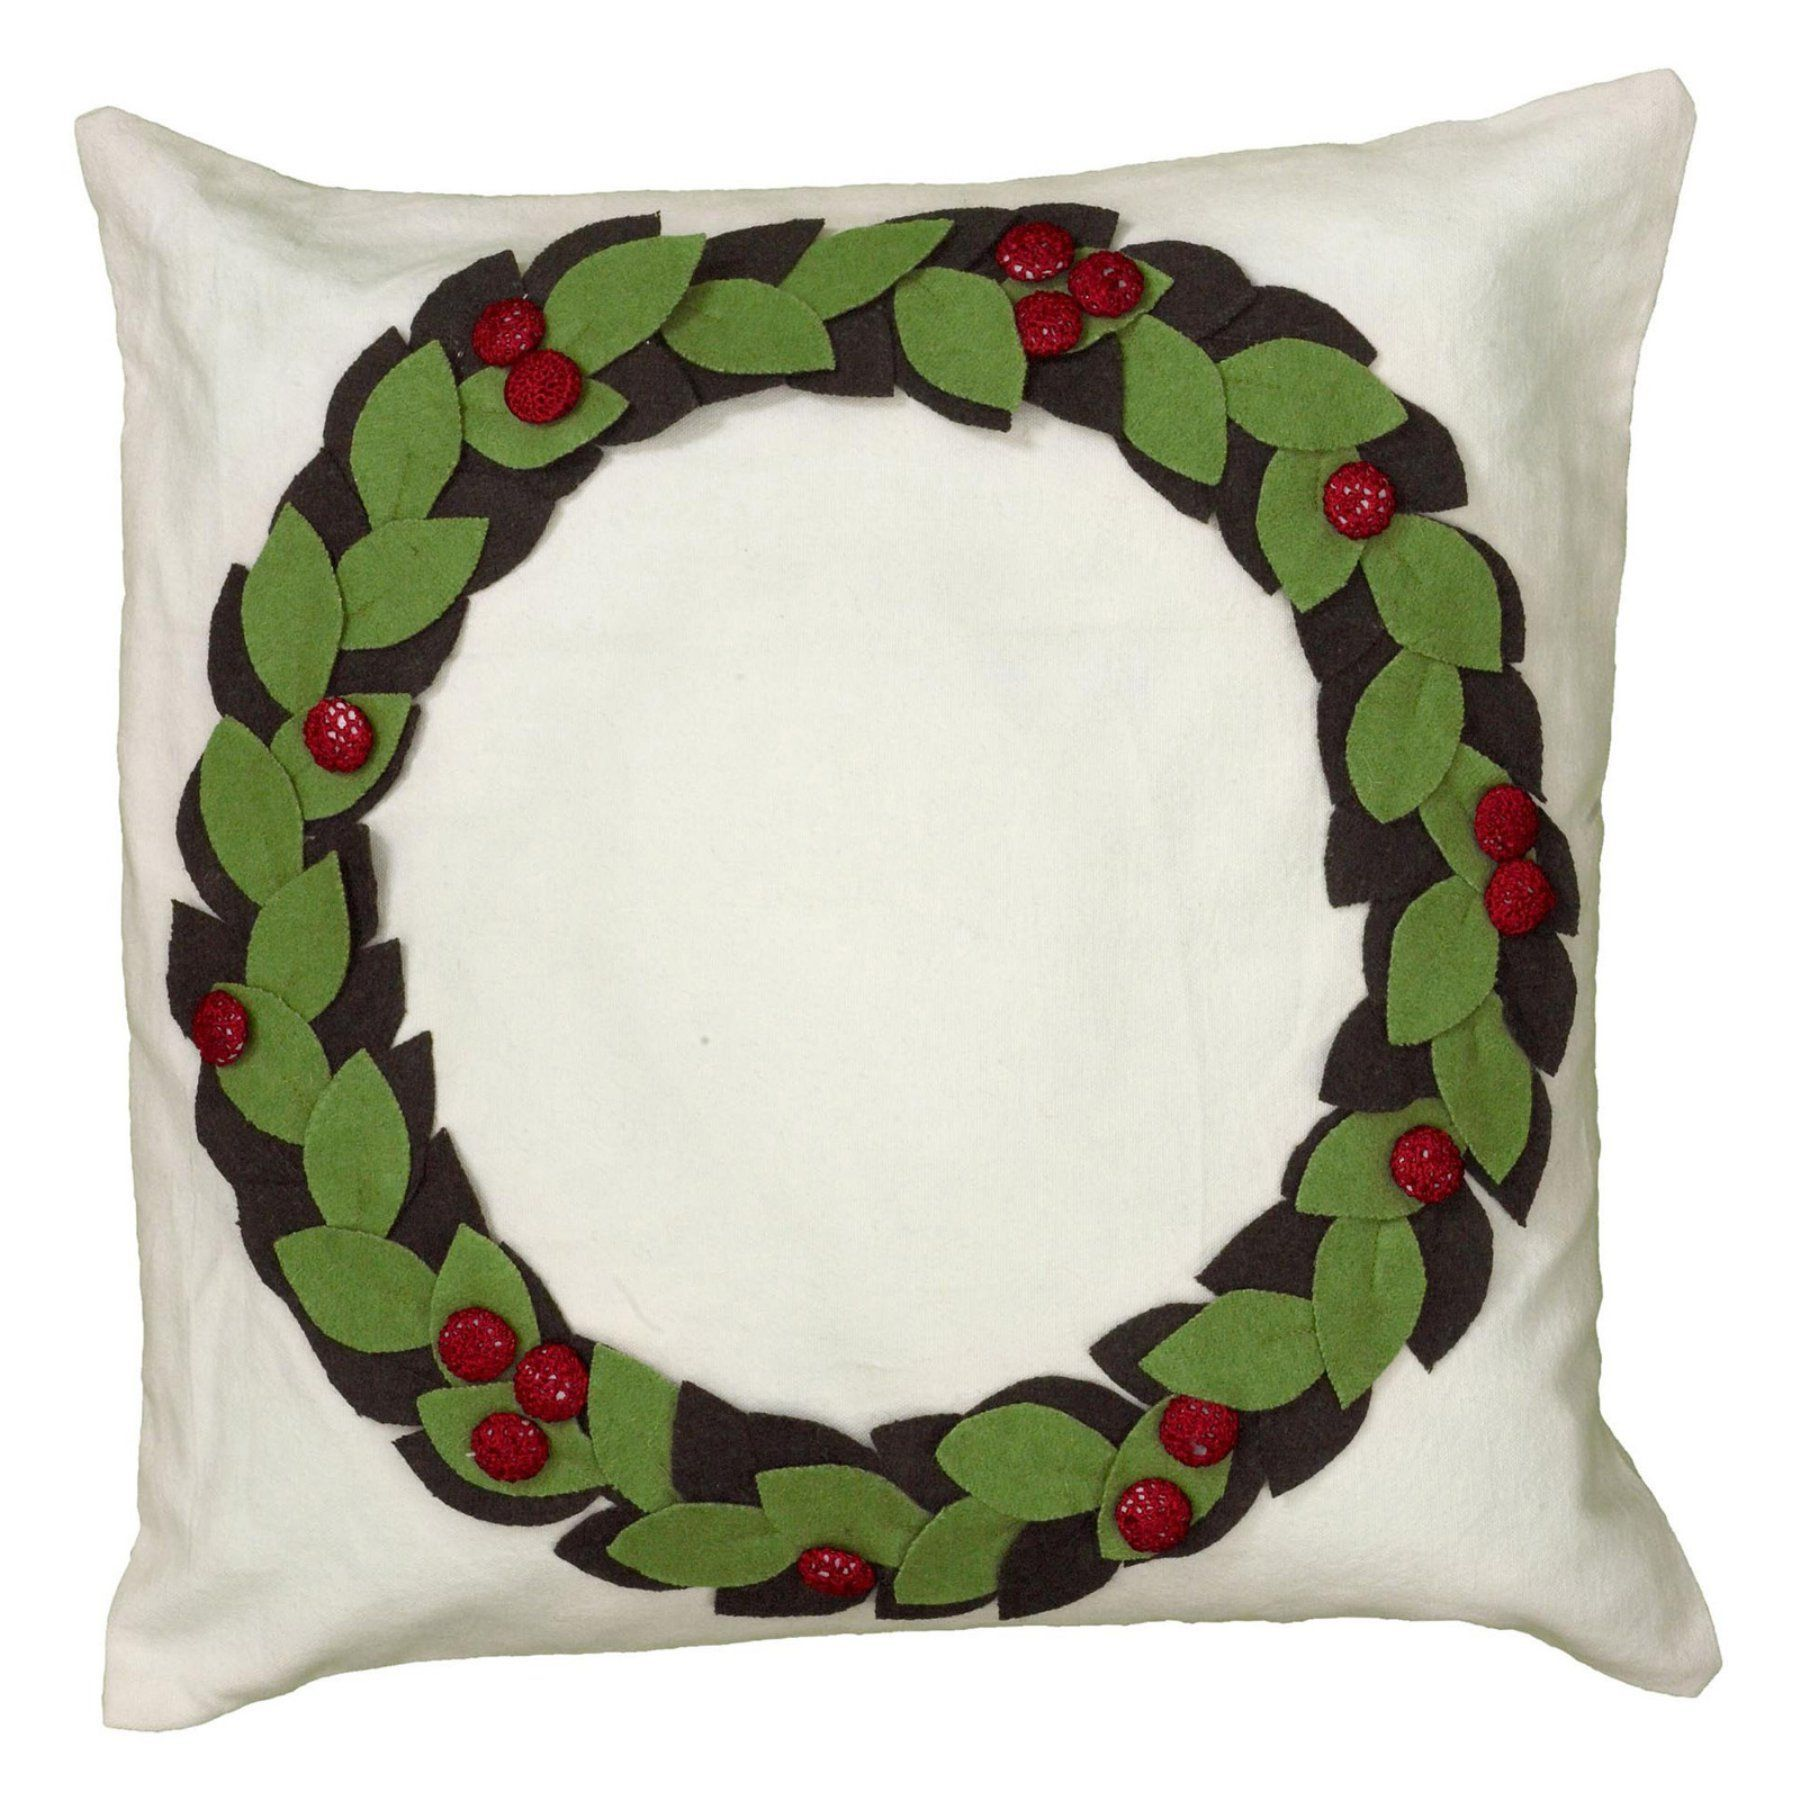 Rizzy Home Applique and Embroidery Details with Hand Sewn Buttons Decorative Throw Pillow